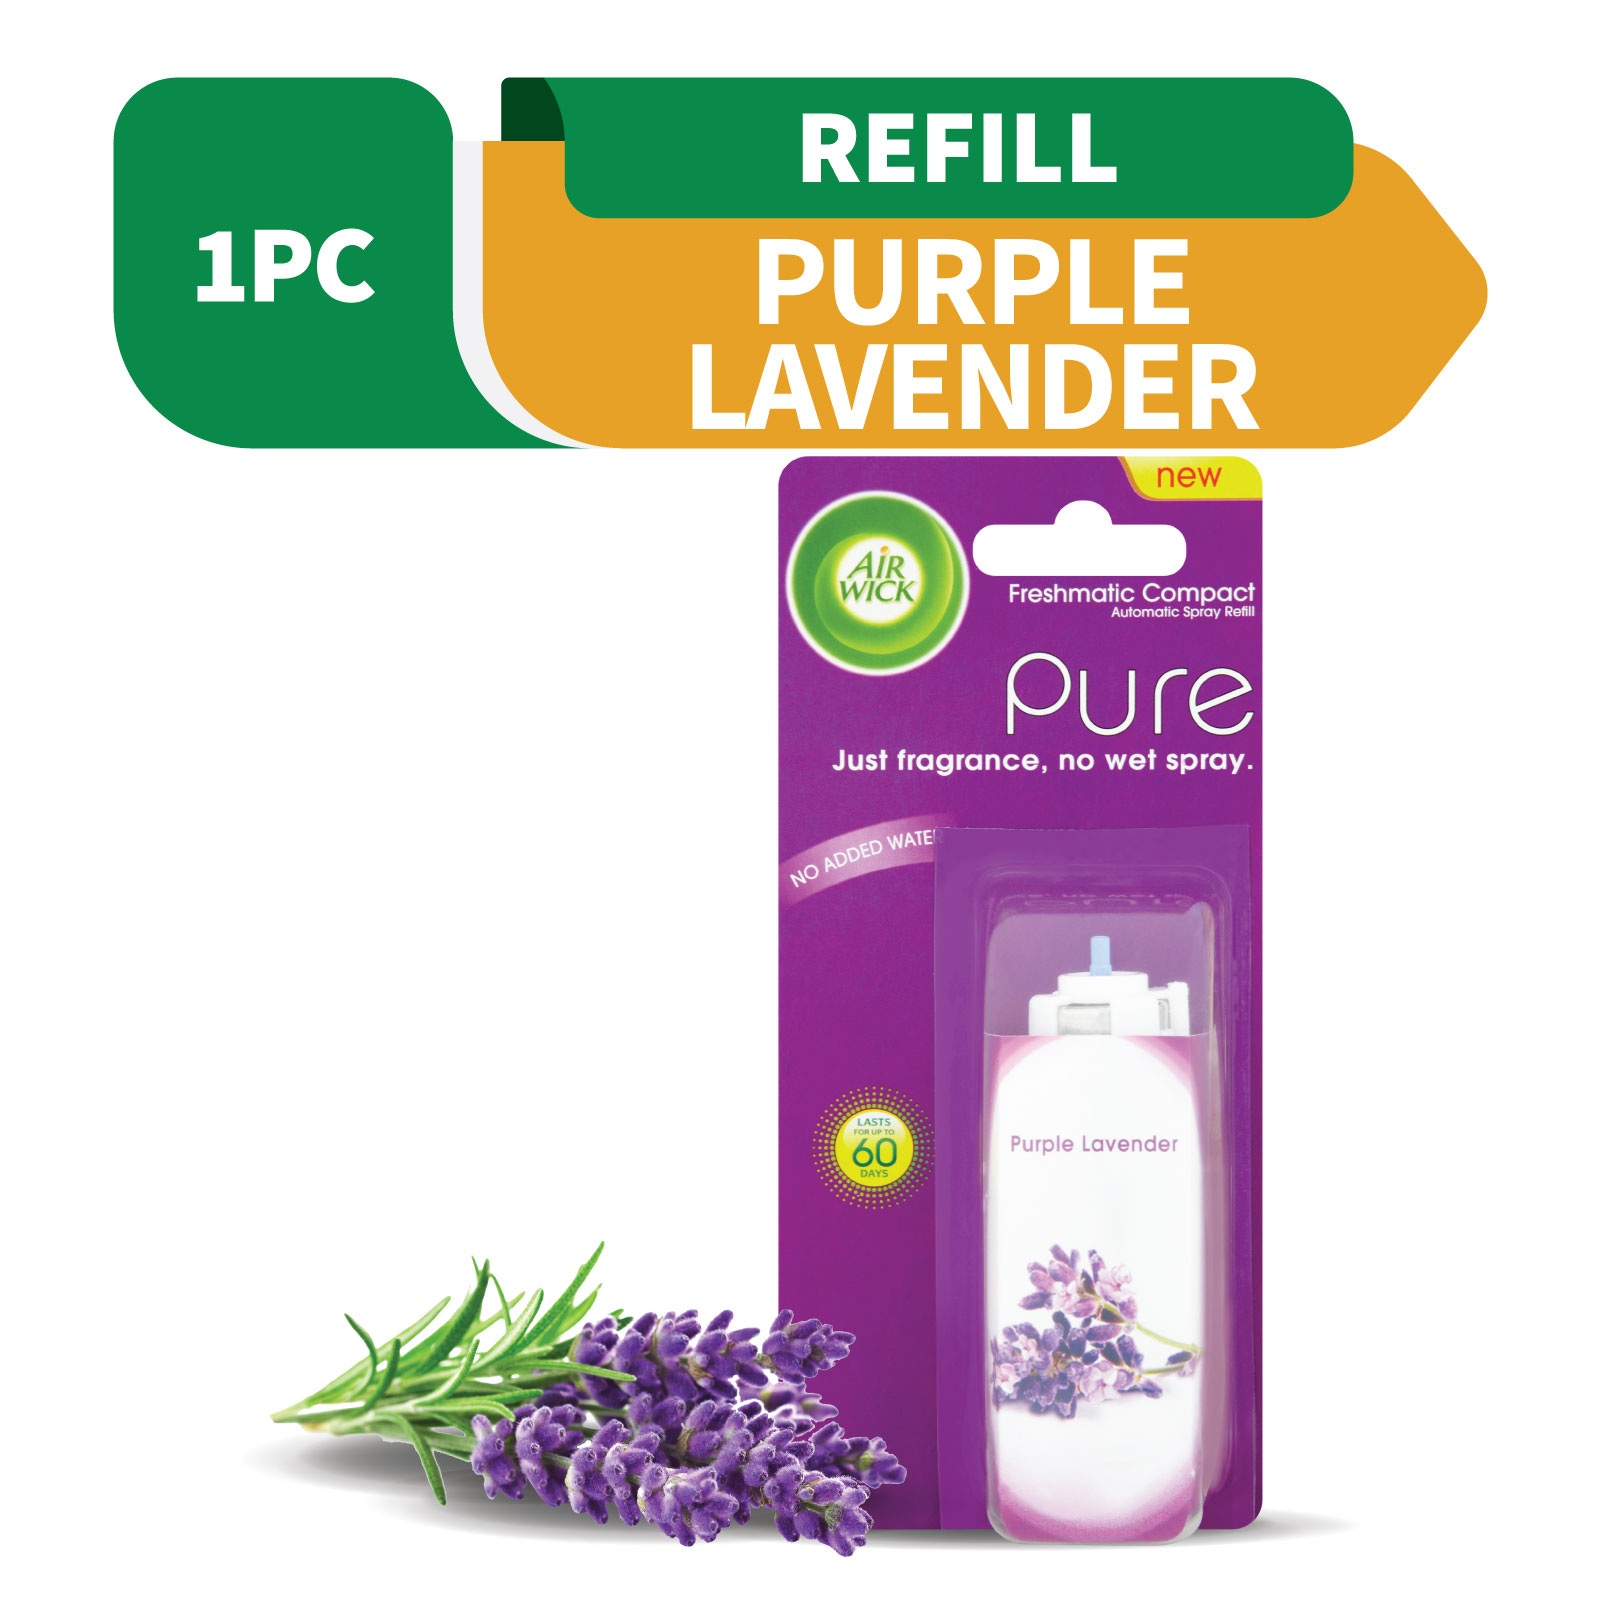 Air Wick Freshmatic Compact Purple Lavender Refill 24ml